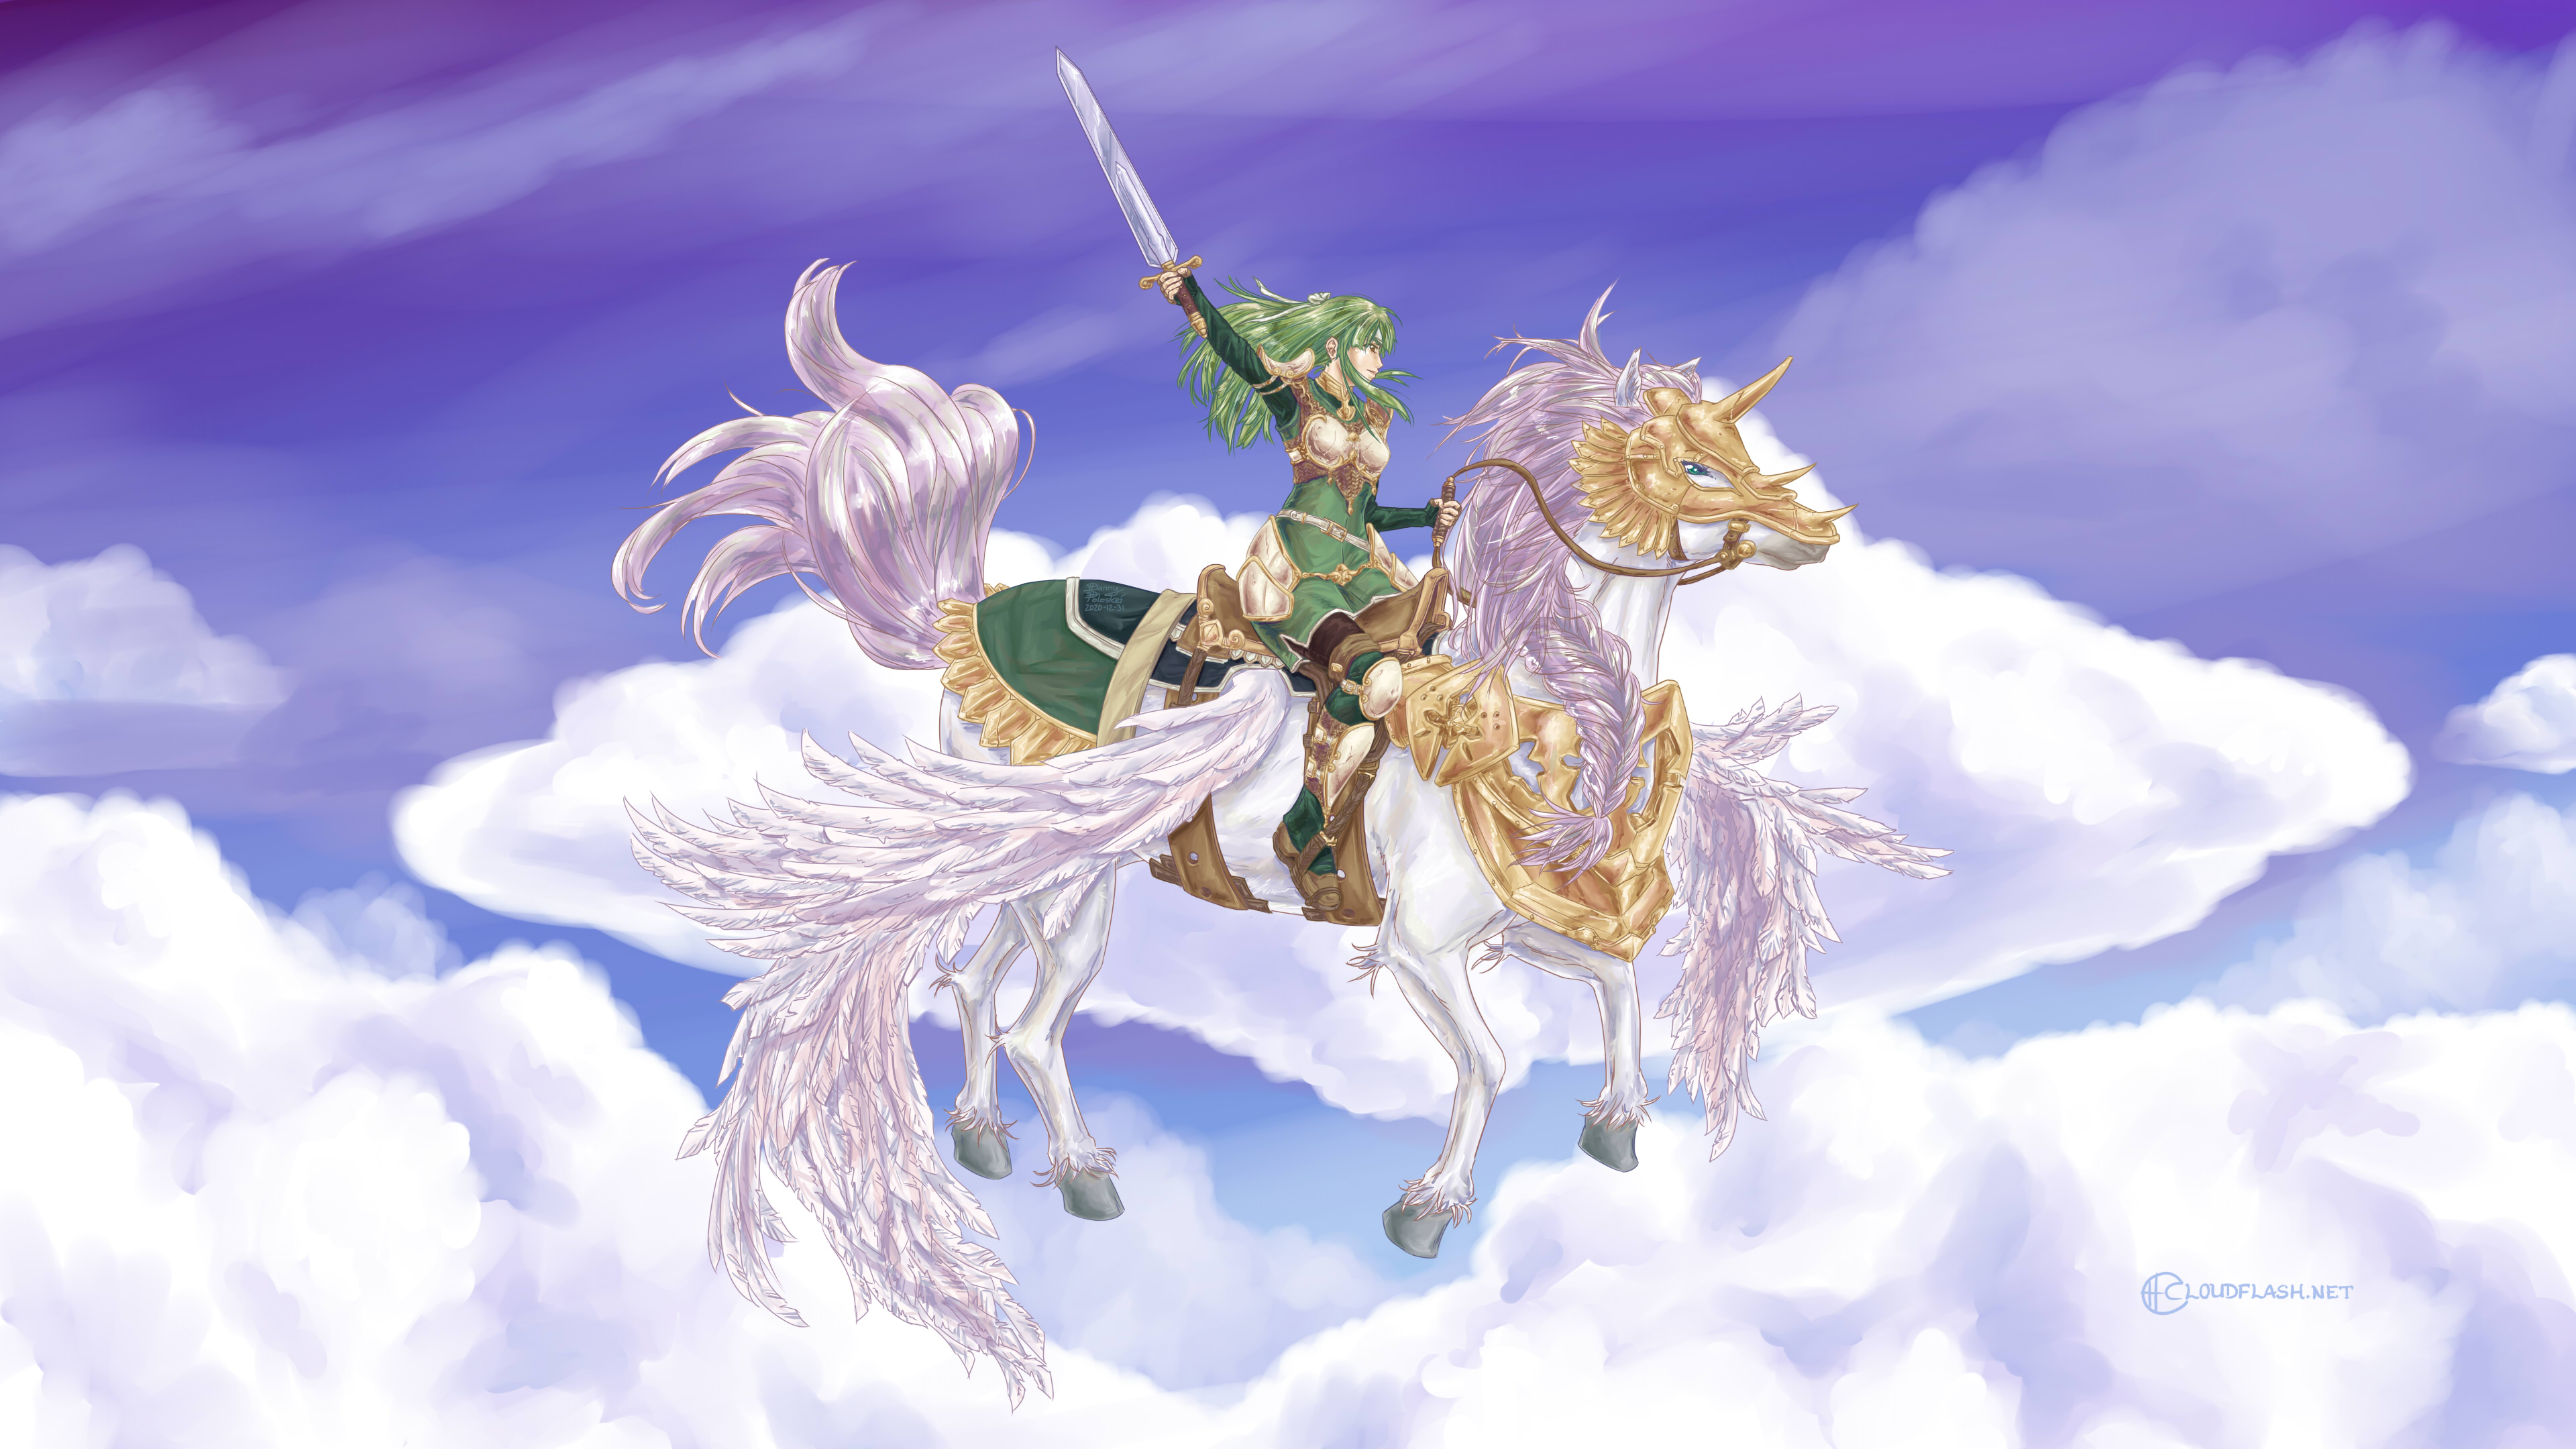 Palla riding a pegasus (character from Fire Emblem 15: Shadows of Valentia, also known as one of the three Pegasus Sisters) by Danny Poloskei